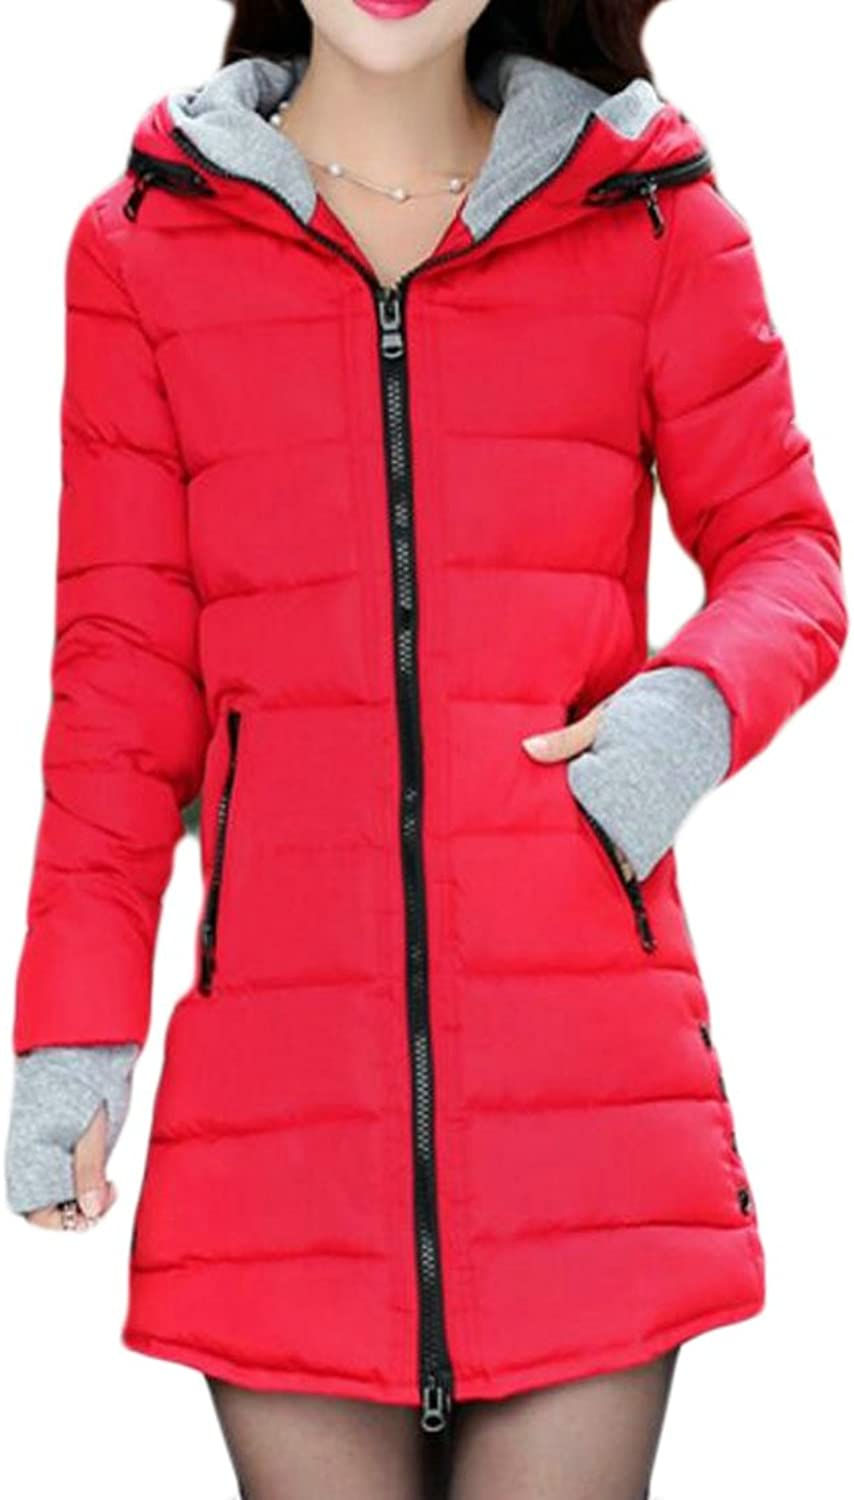 Cromoncent Womens Zipper Warm Thick Quilted Hooded Outerwear Parka Coat